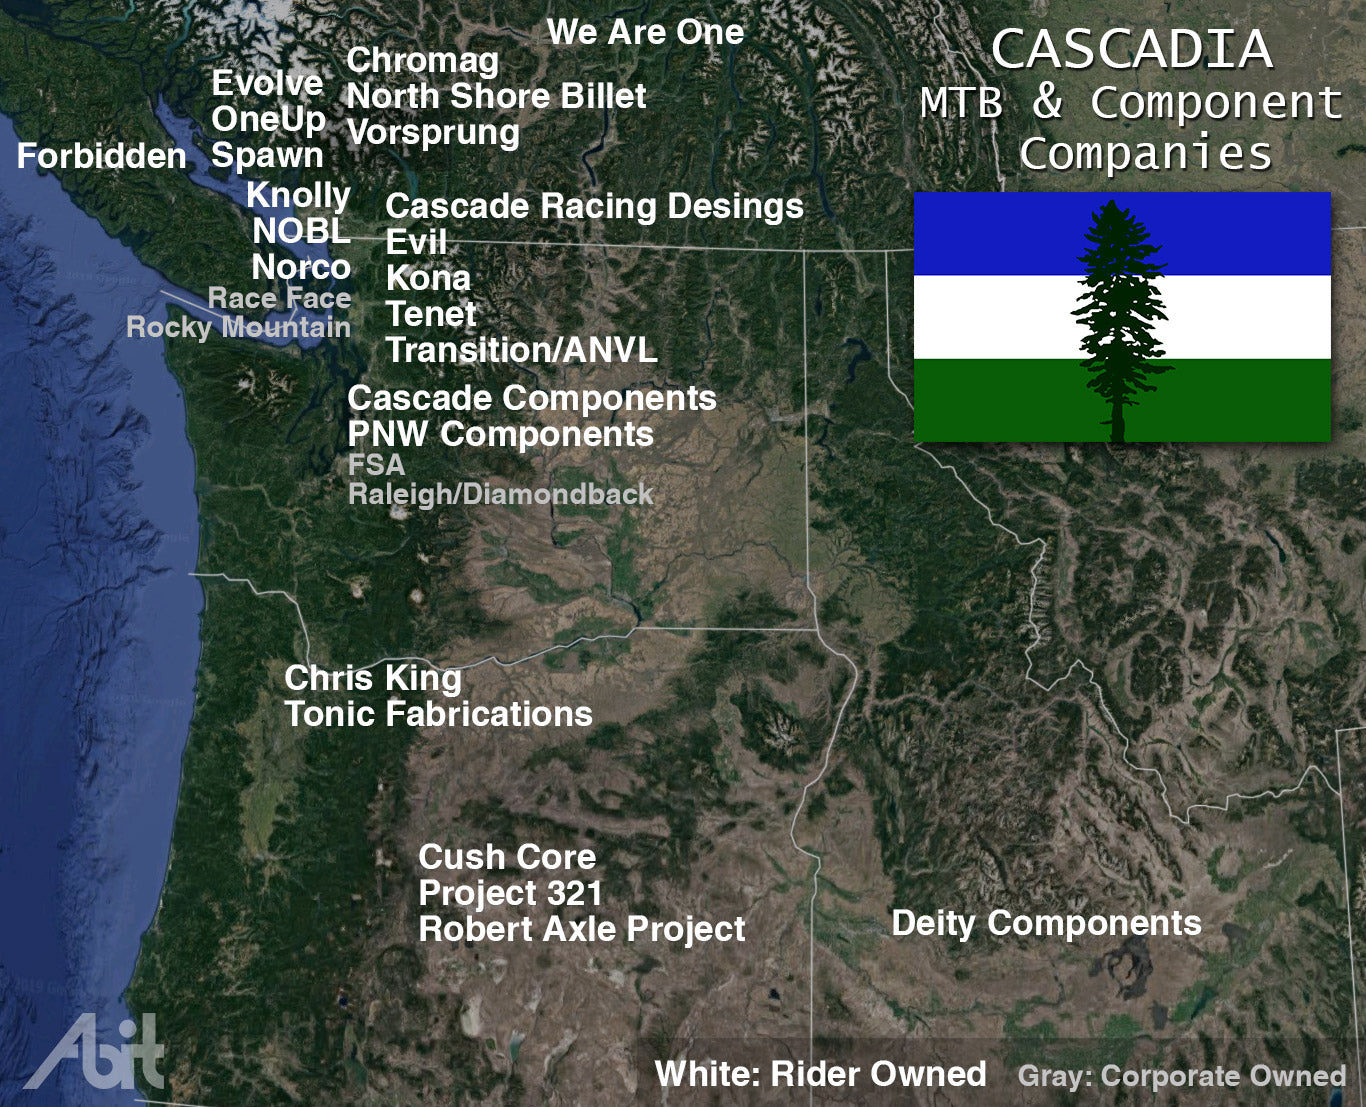 Map showing mountain bike companies based in the PNW